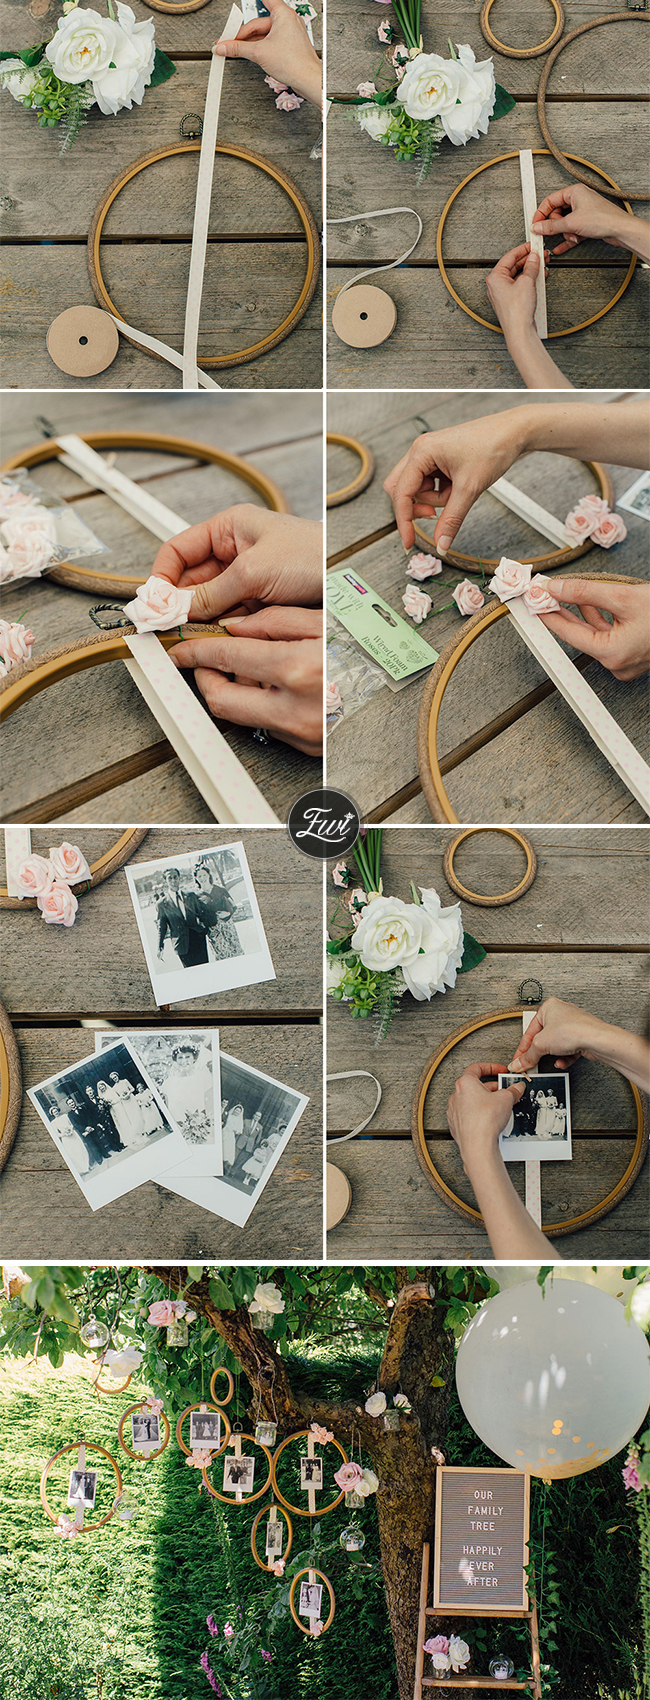 DIY floral hoop wedding photo display ideas